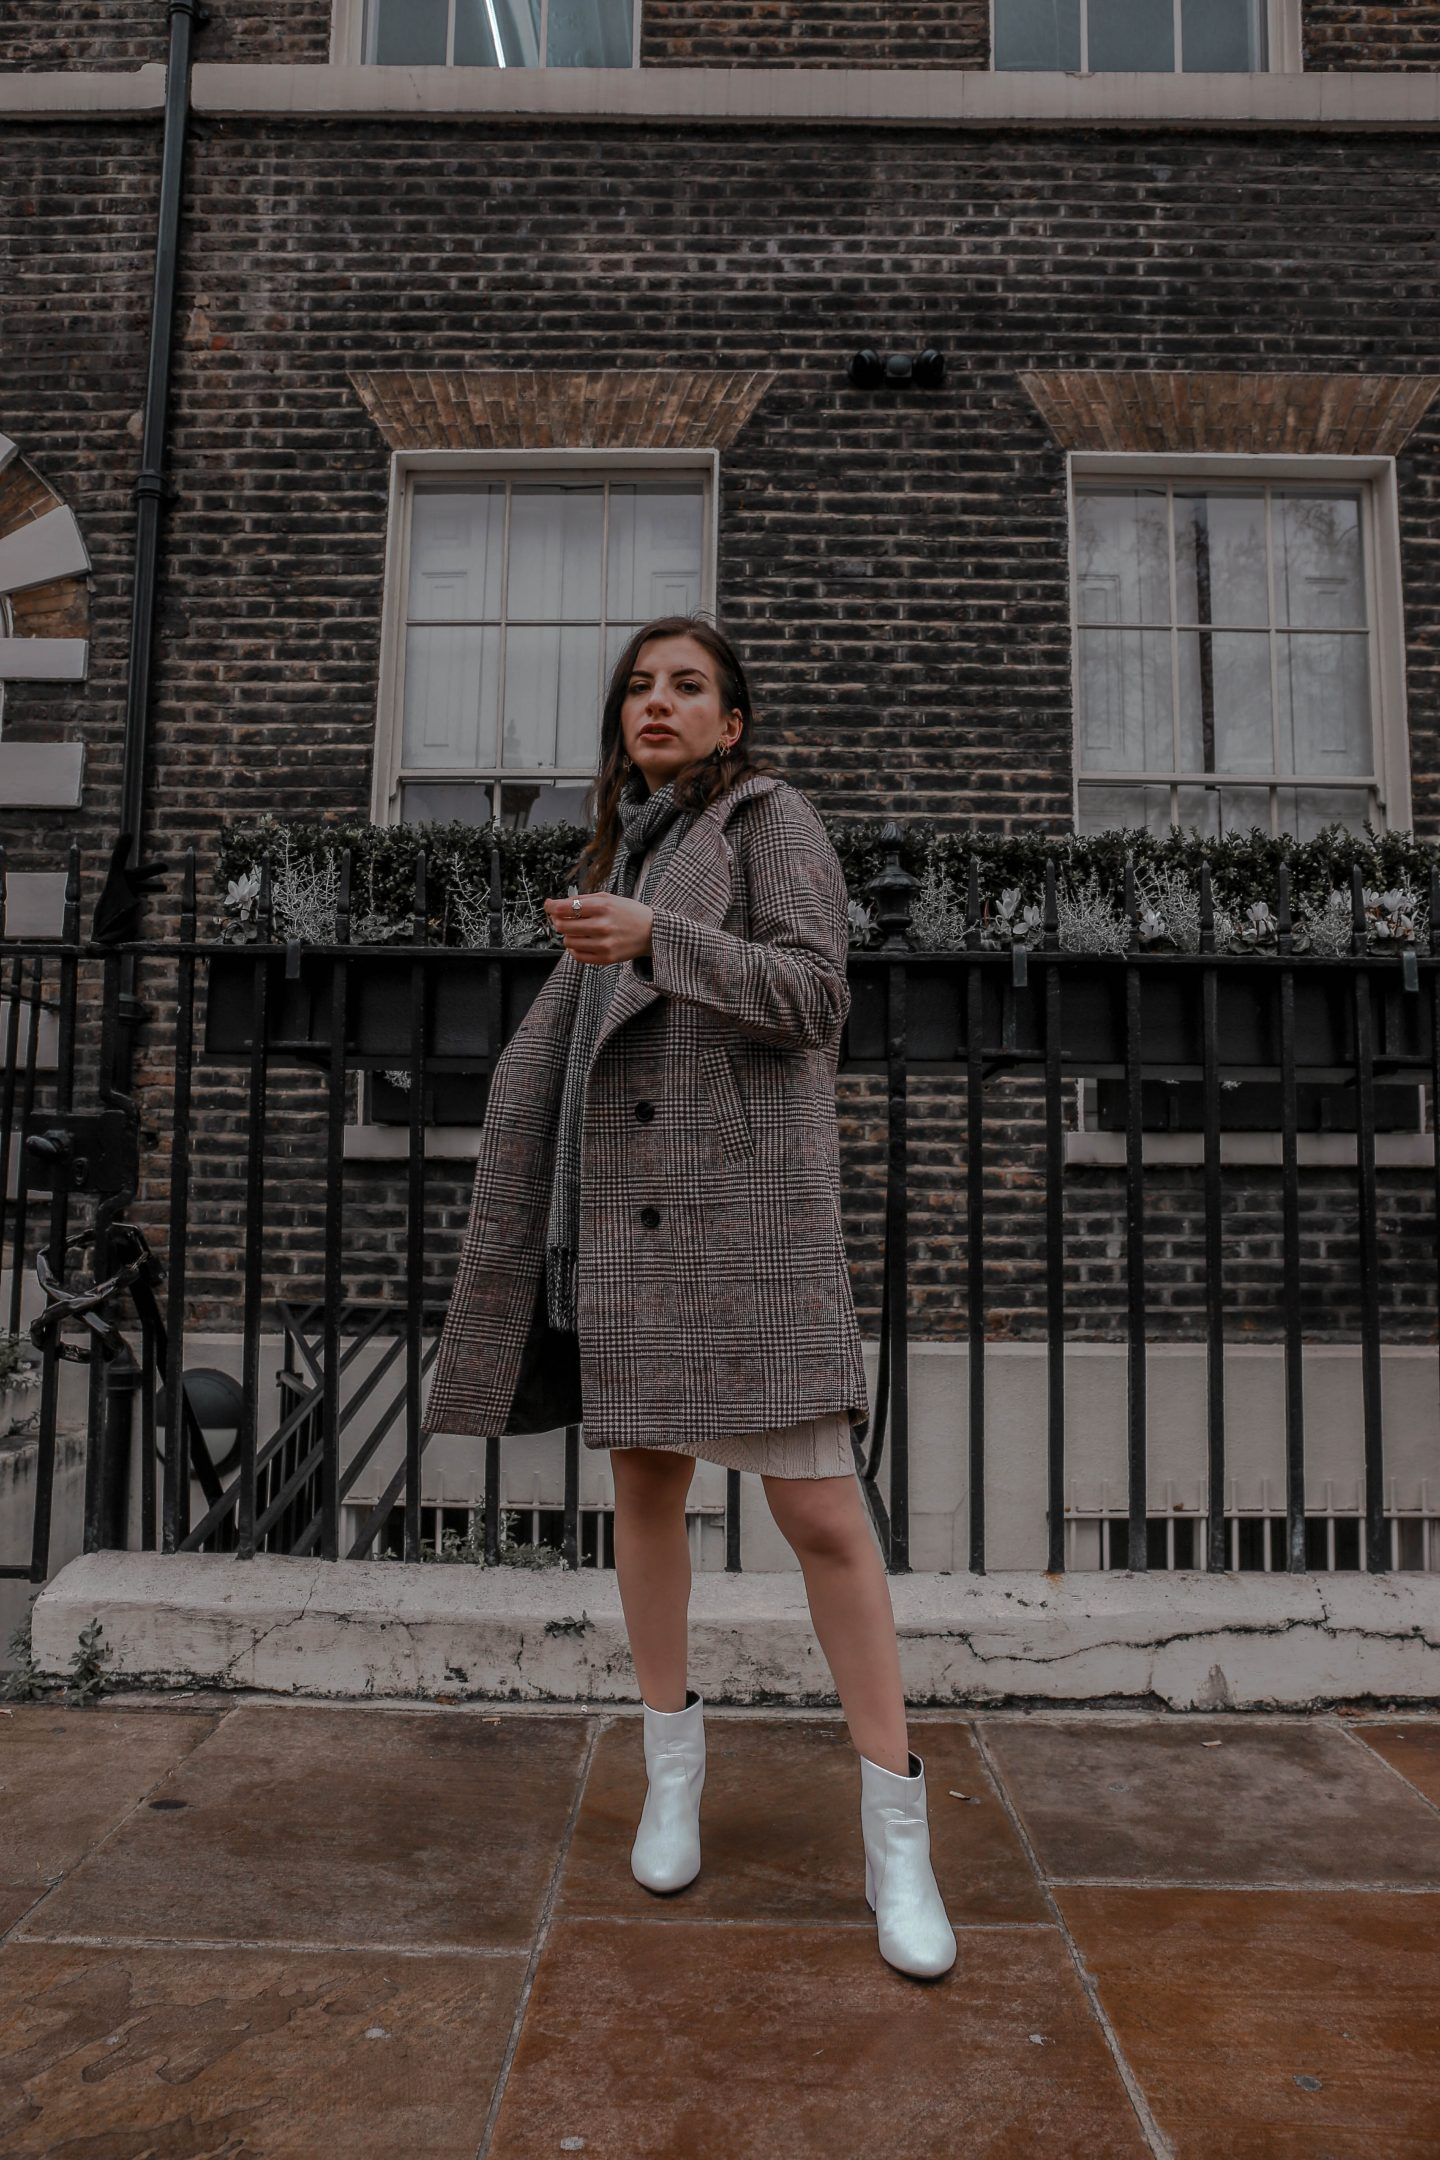 Two Coats to wear for Winter/Spring Transition